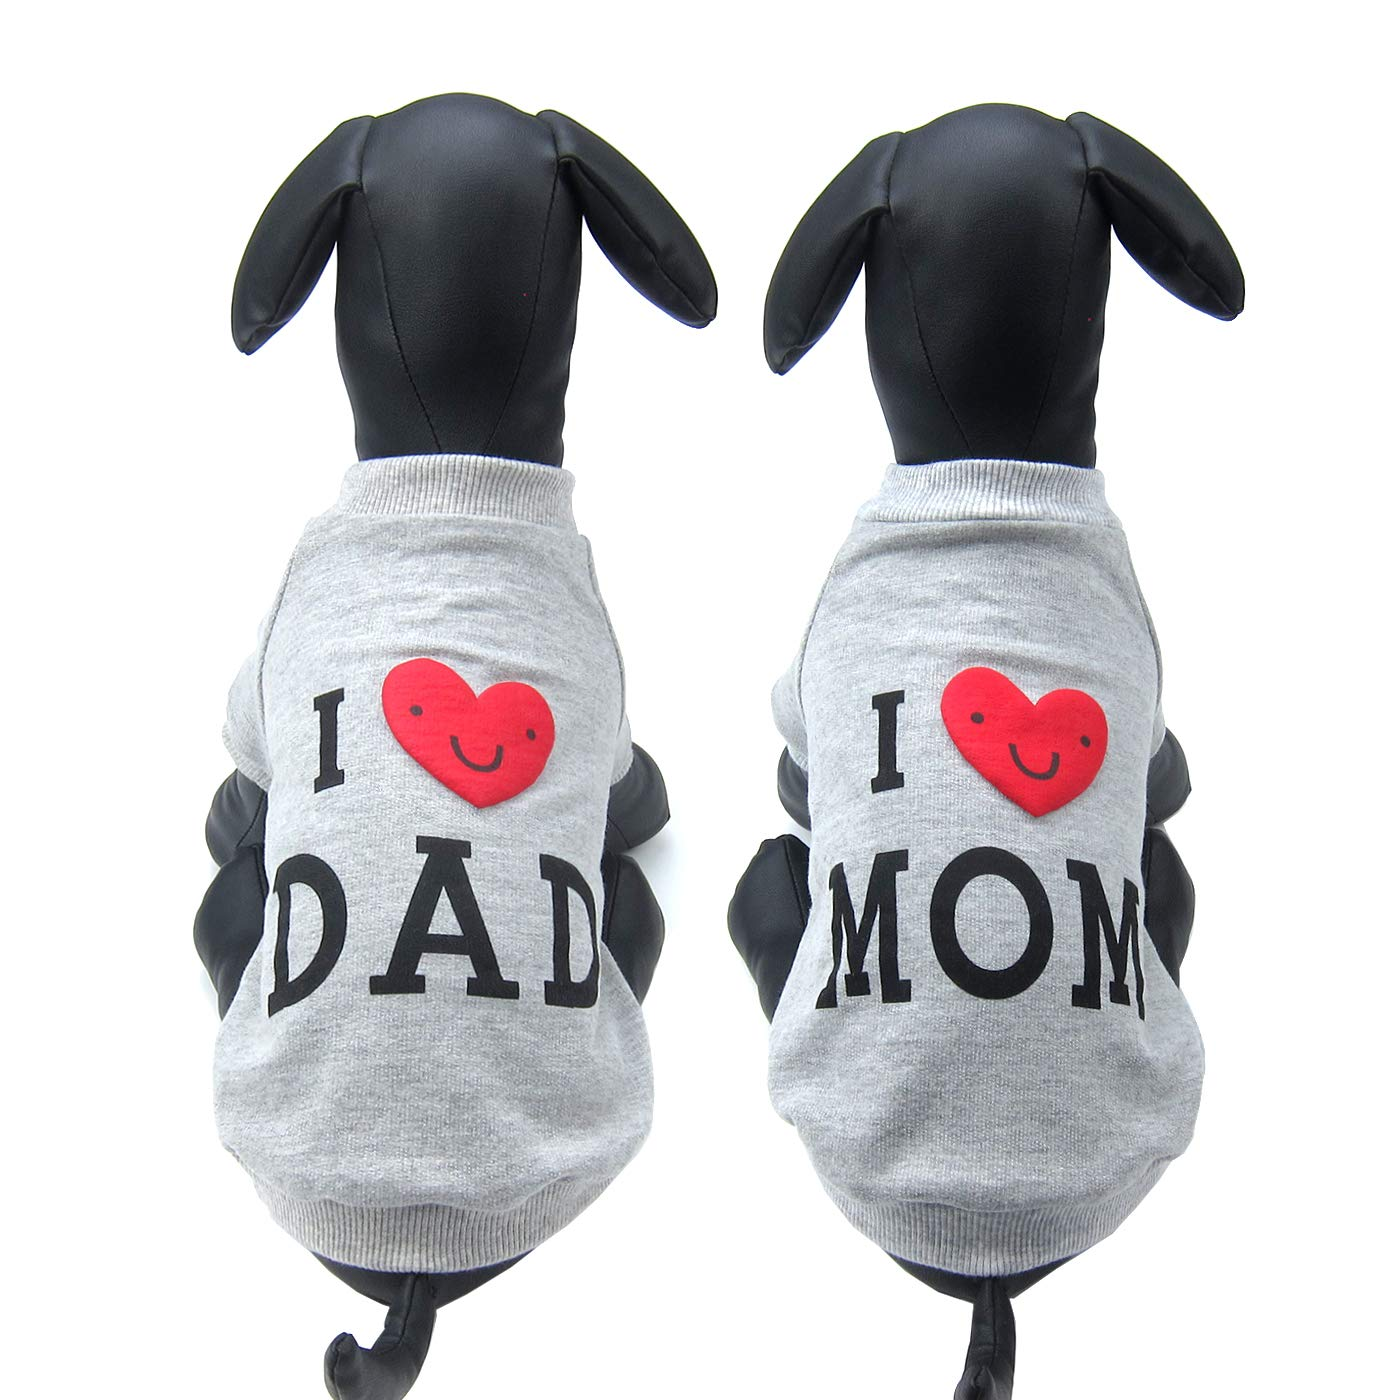 Grey Large Grey Large Alfie Pet Kiran T-Shirt Daddy and Mommy Set color  Grey, Size  Large